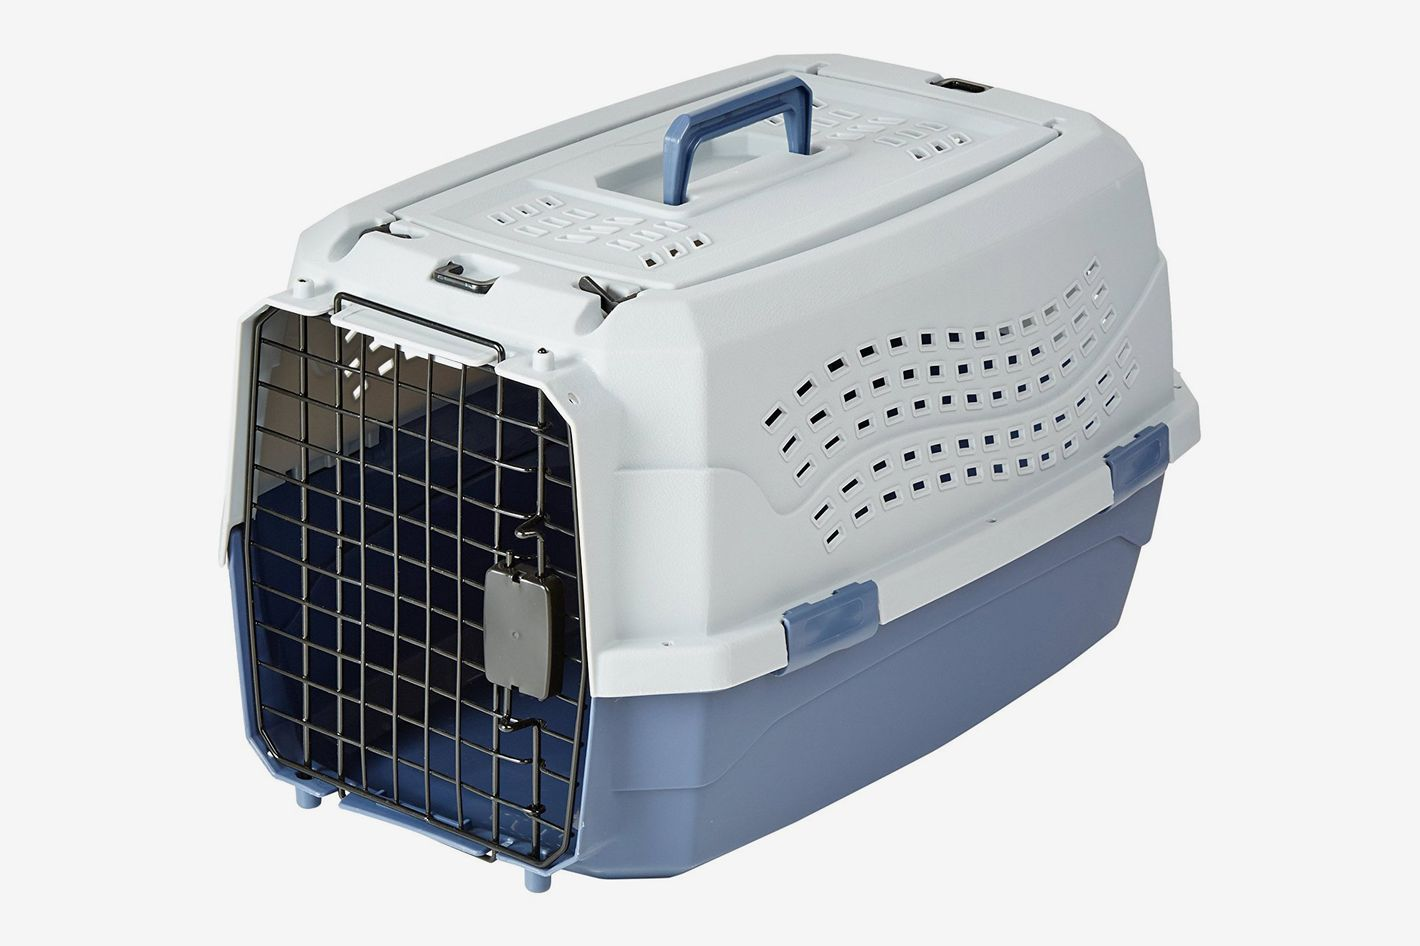 afe41c2e44 AmazonBasics Two-Door Top-Load Pet Kennel 23-Inch